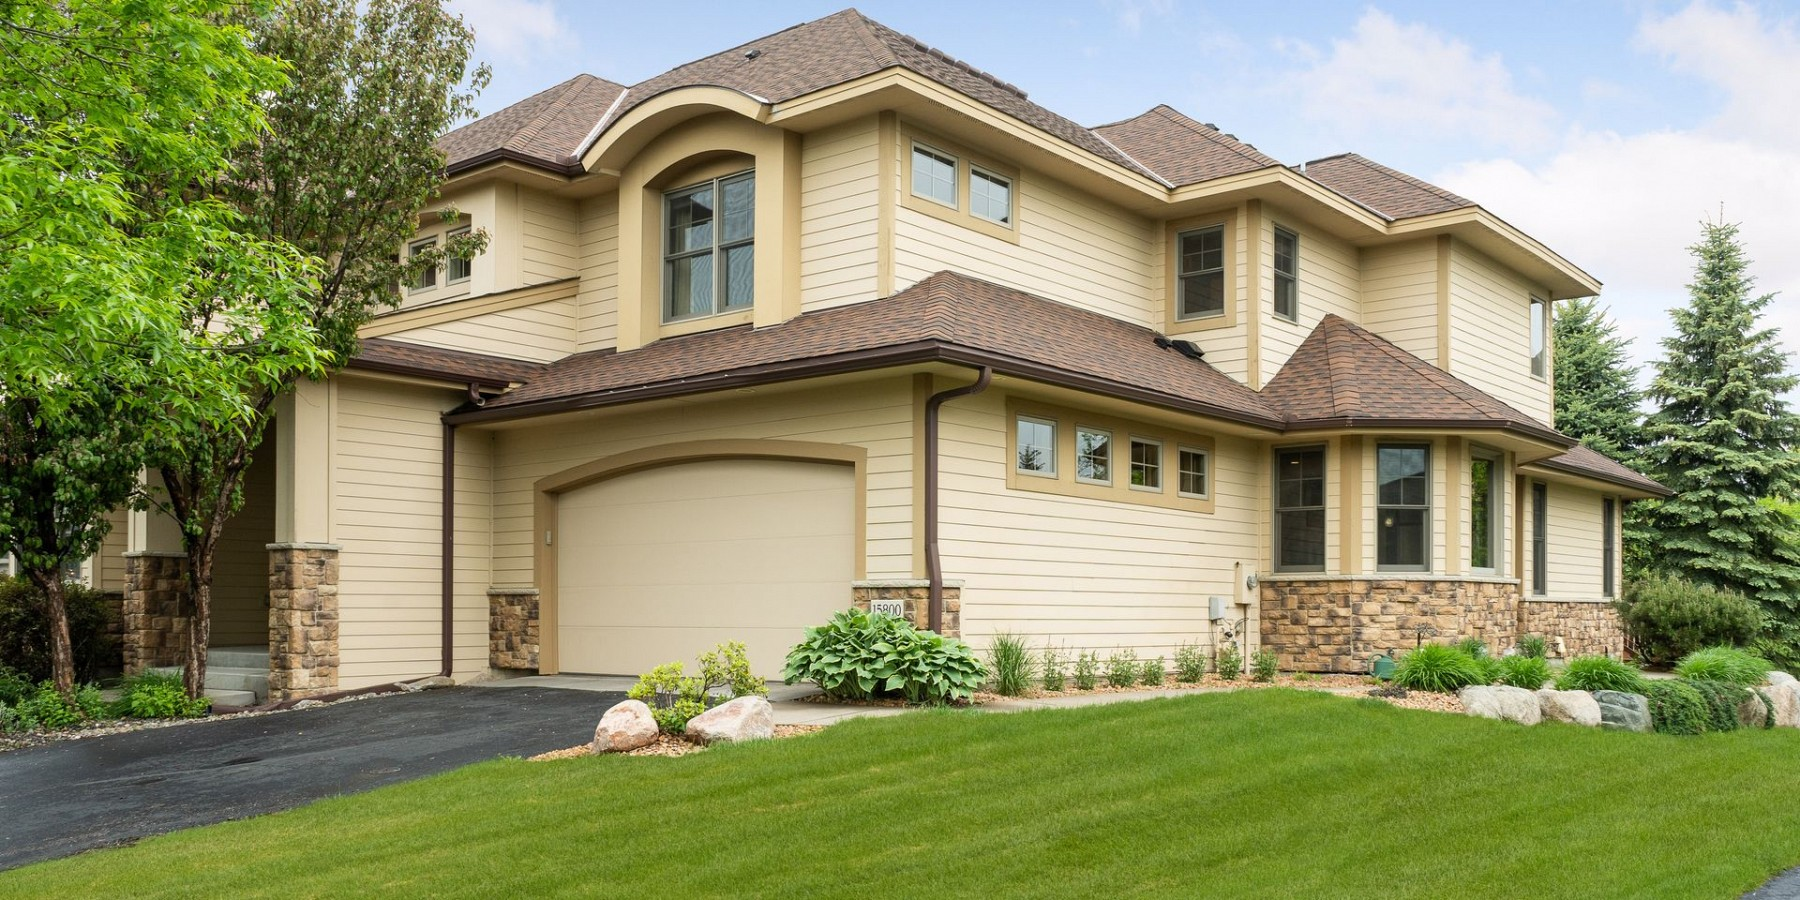 15800 50TH PLACE NORTH, PLYMOUTH, MN 55446